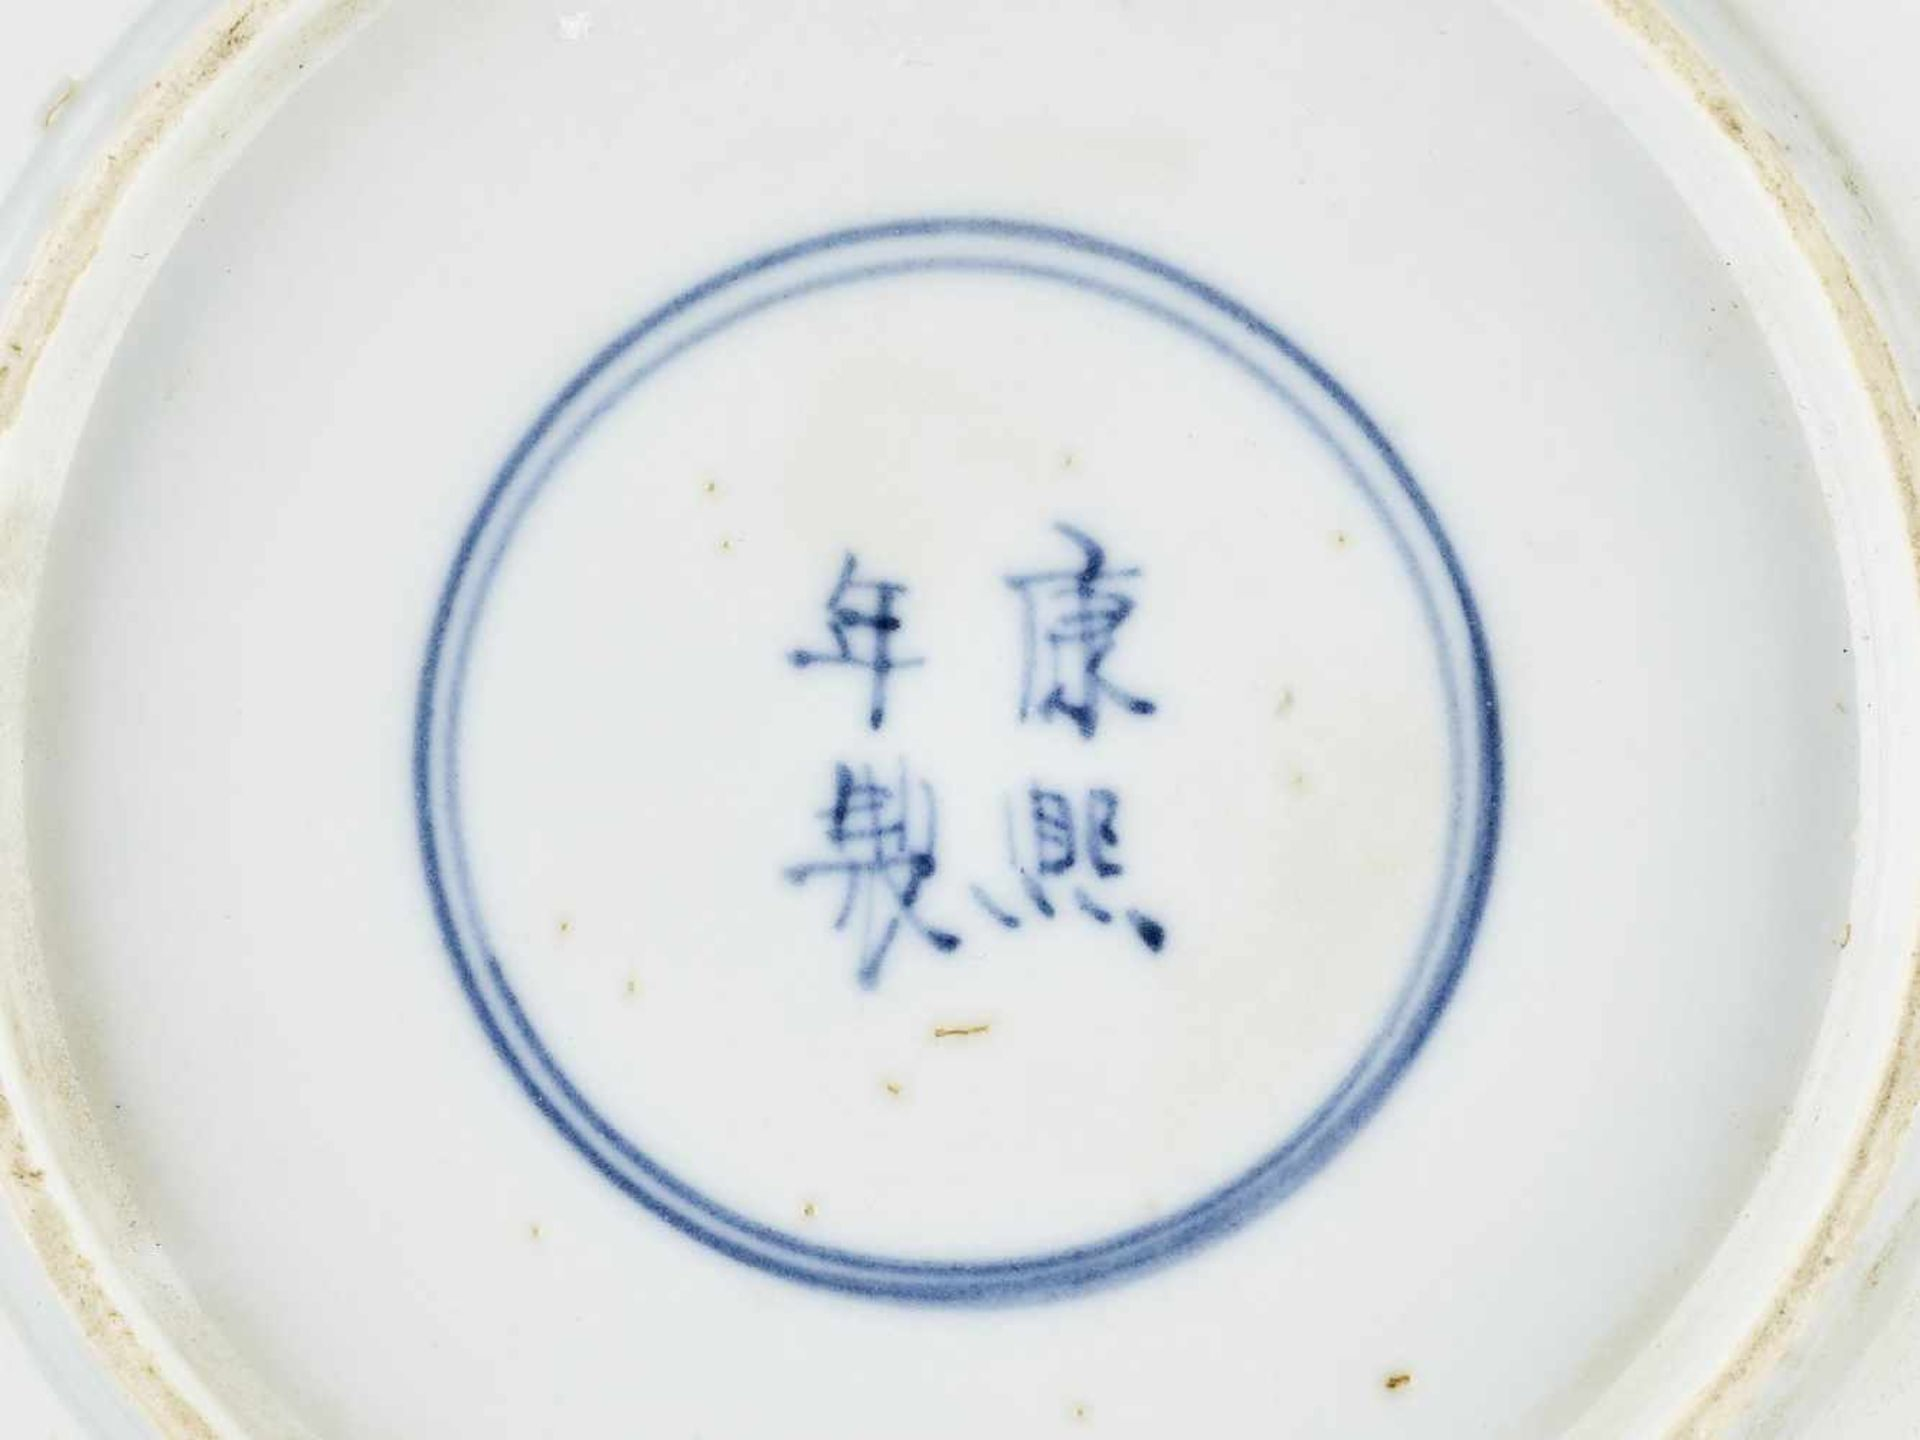 Los 414 - TWO SMALL BLUE AND WHITE GLAZED PORCELAIN DISHES, KANGXI MARK AND PERIOD